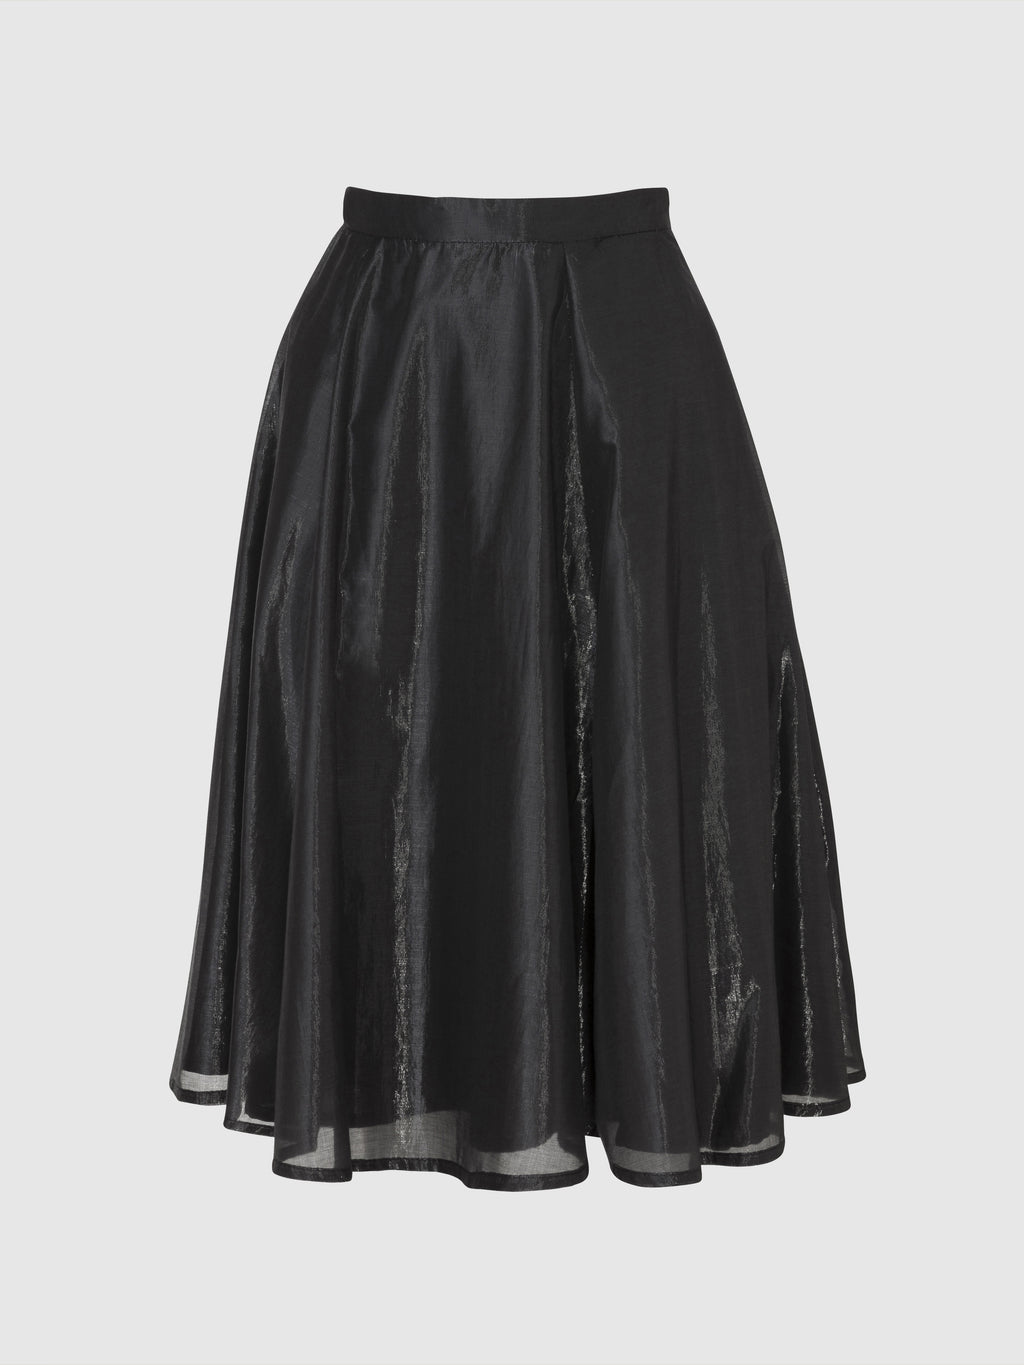 Knee length glossy black flared skirt from the RÉZO women's collection